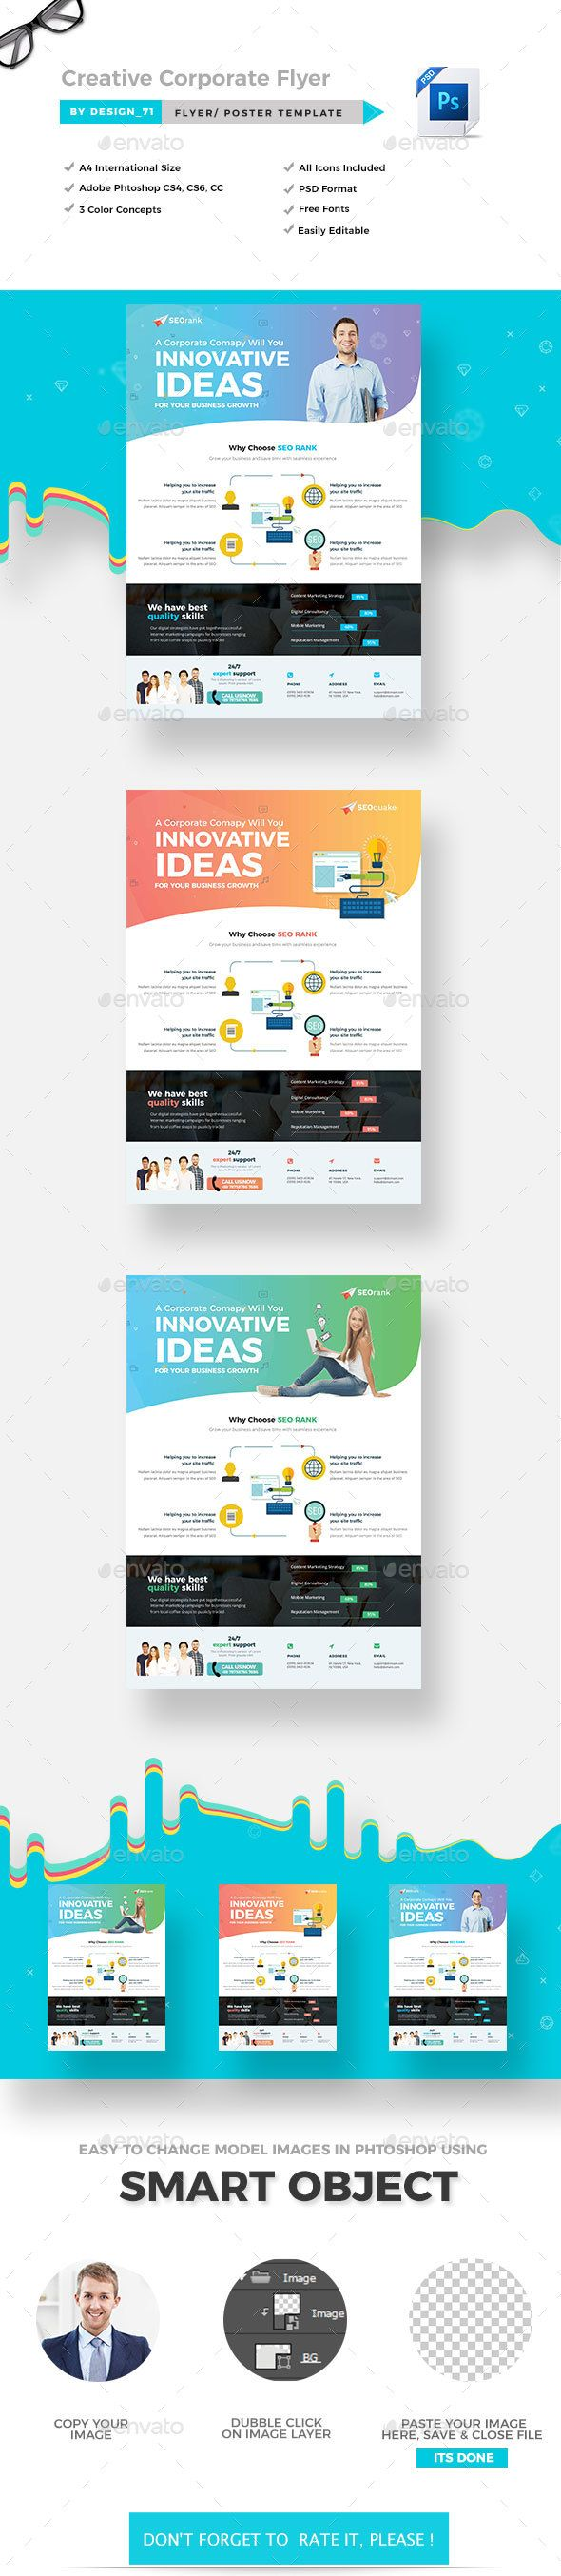 Creative Corporate Flyer Template Psd  Flyer Templates